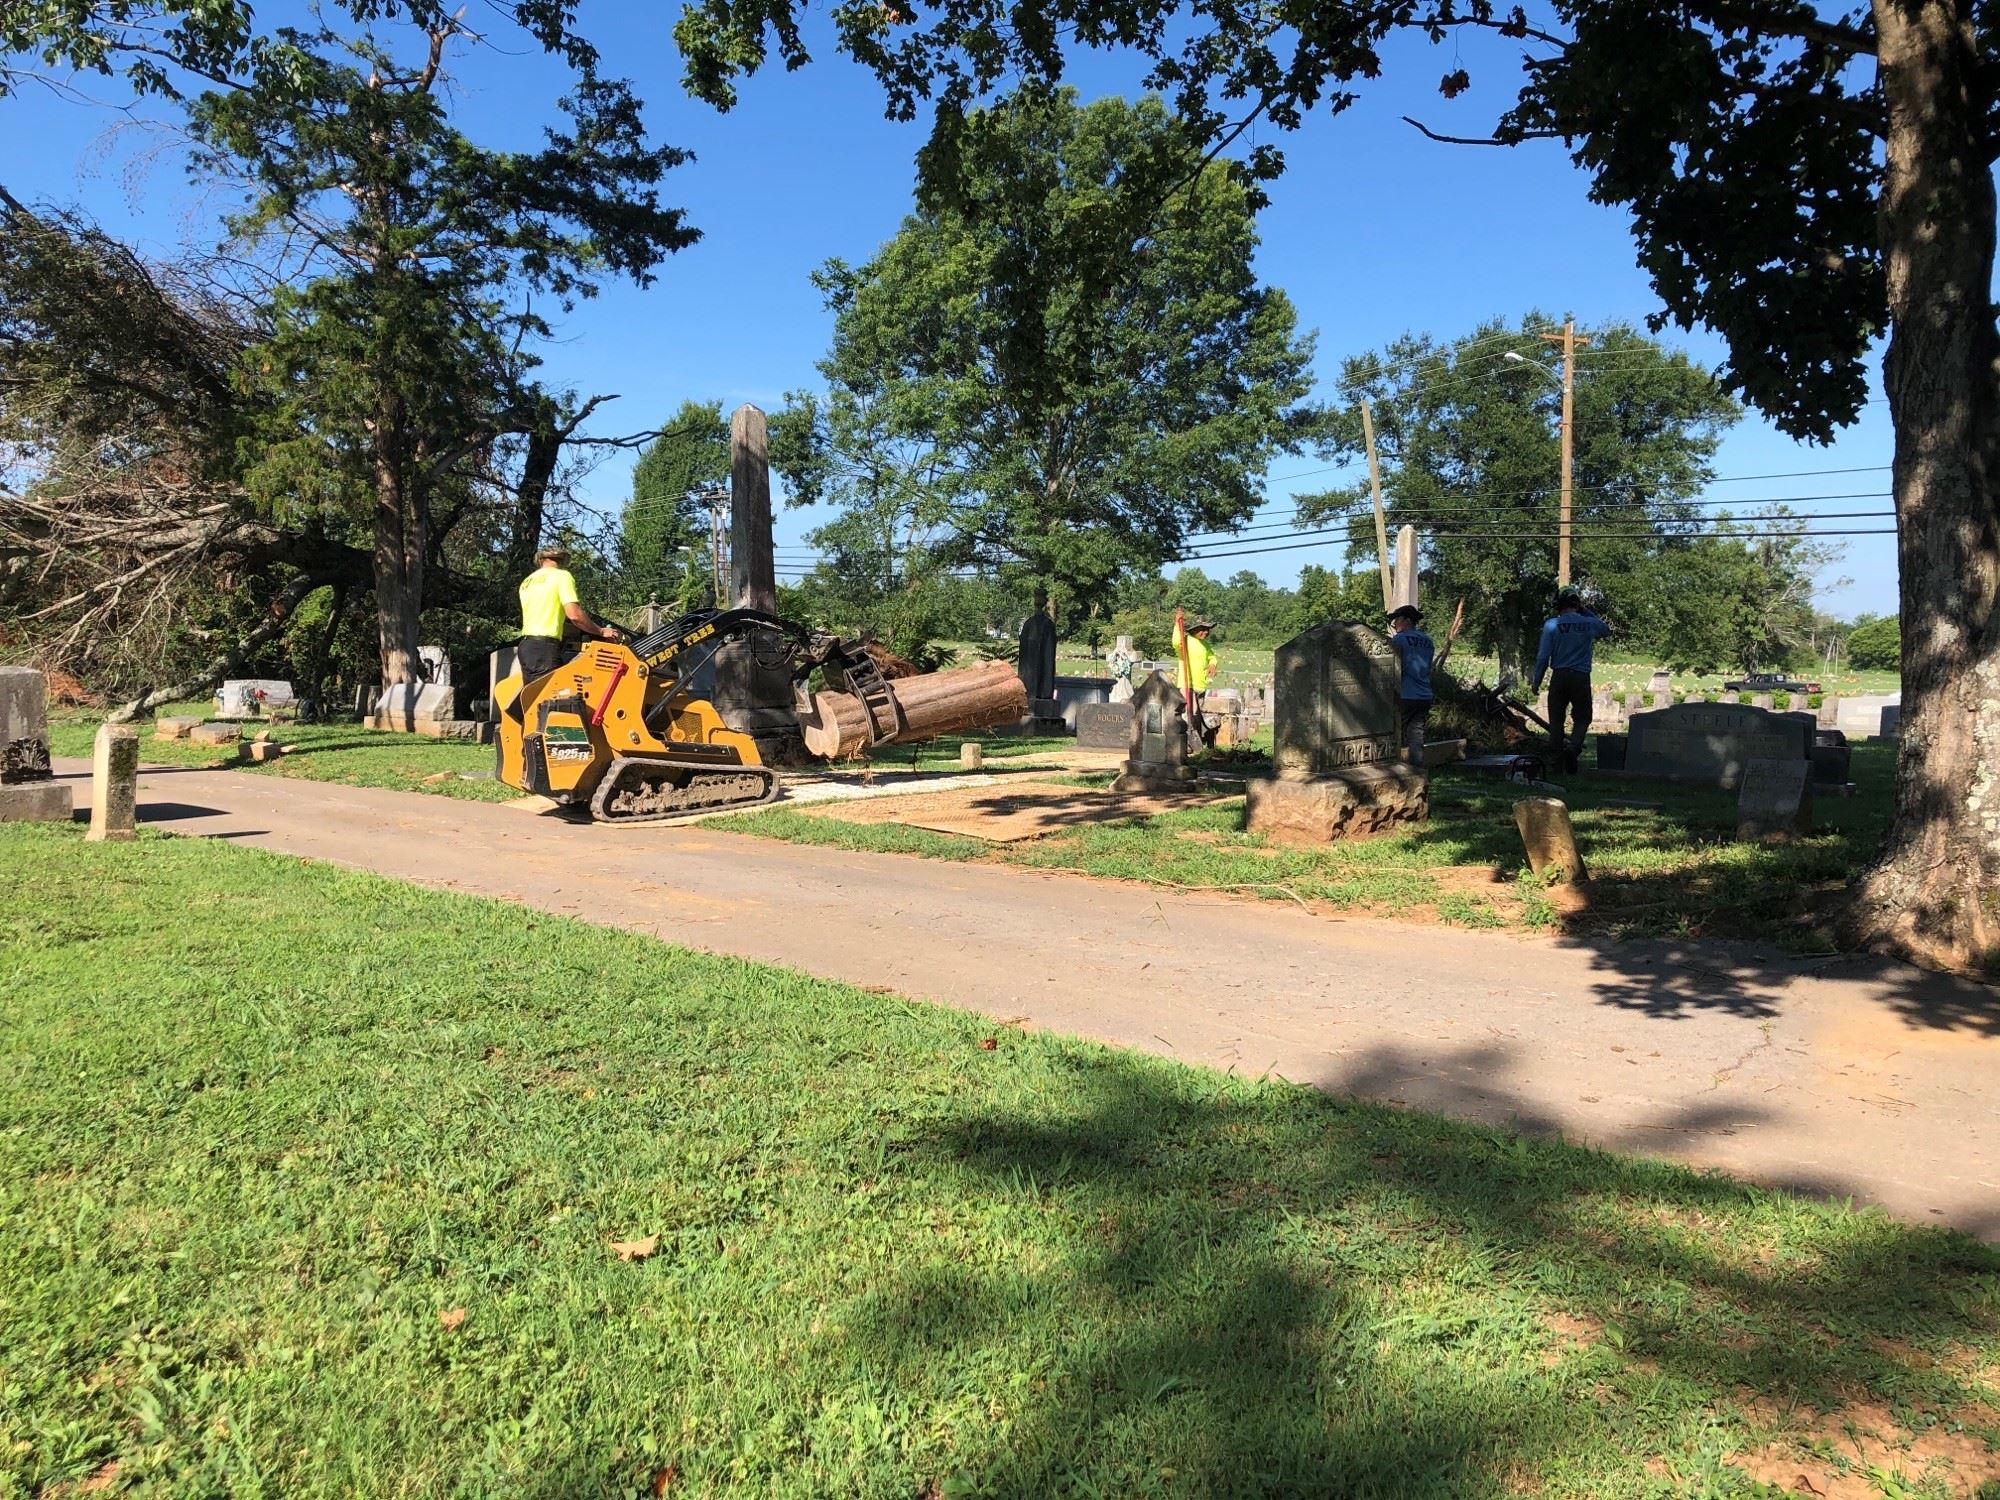 Photo - Cemetery Tornado Related Tree Damage Cleanup Begins  7-27-20  B